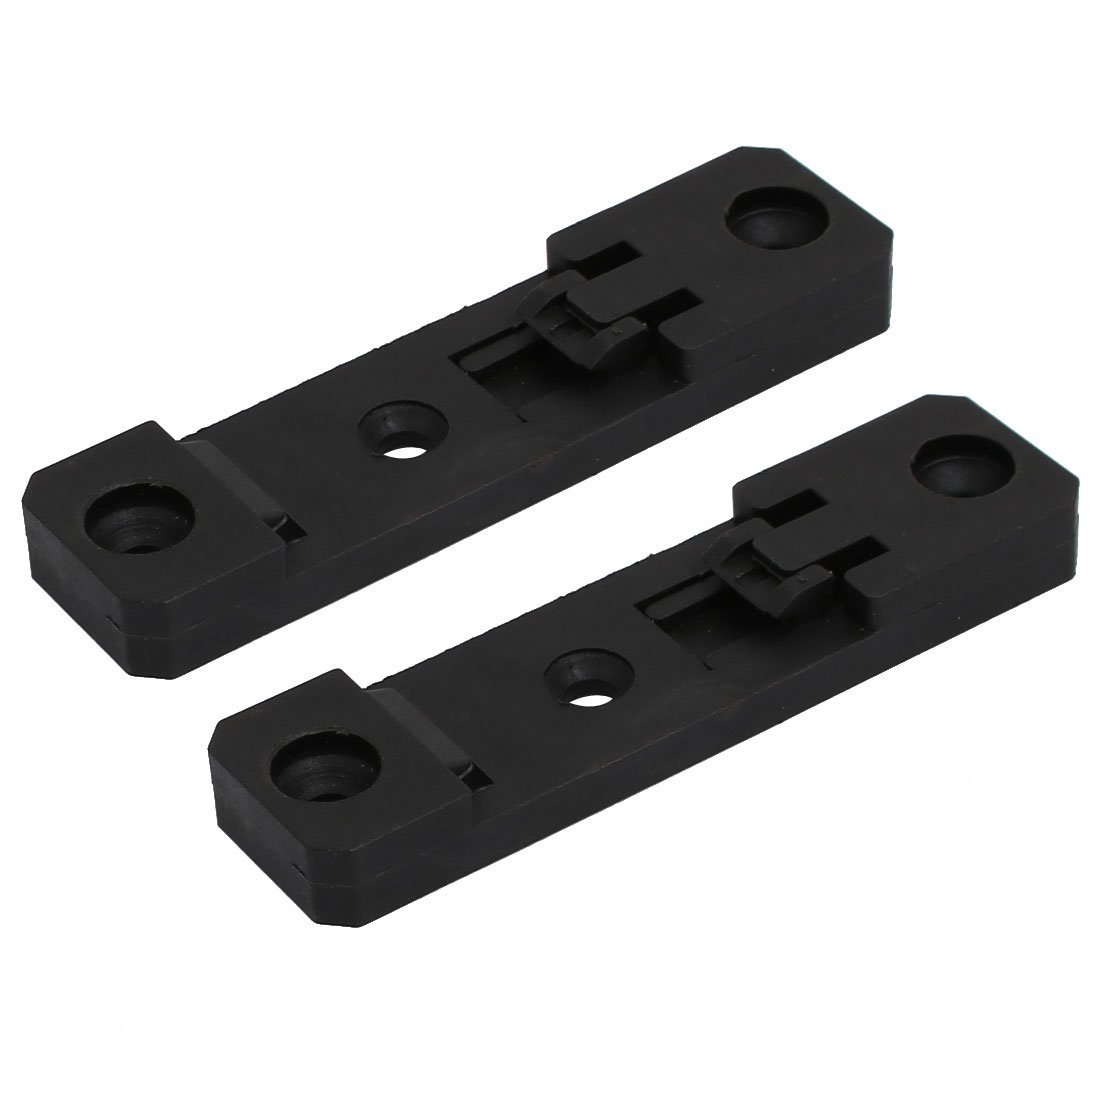 uxcell 2 Pcs 35mm Width Nylon Spring Loaded DIN Guide Rail Buckle Clasp 76mmx20mmx8mm